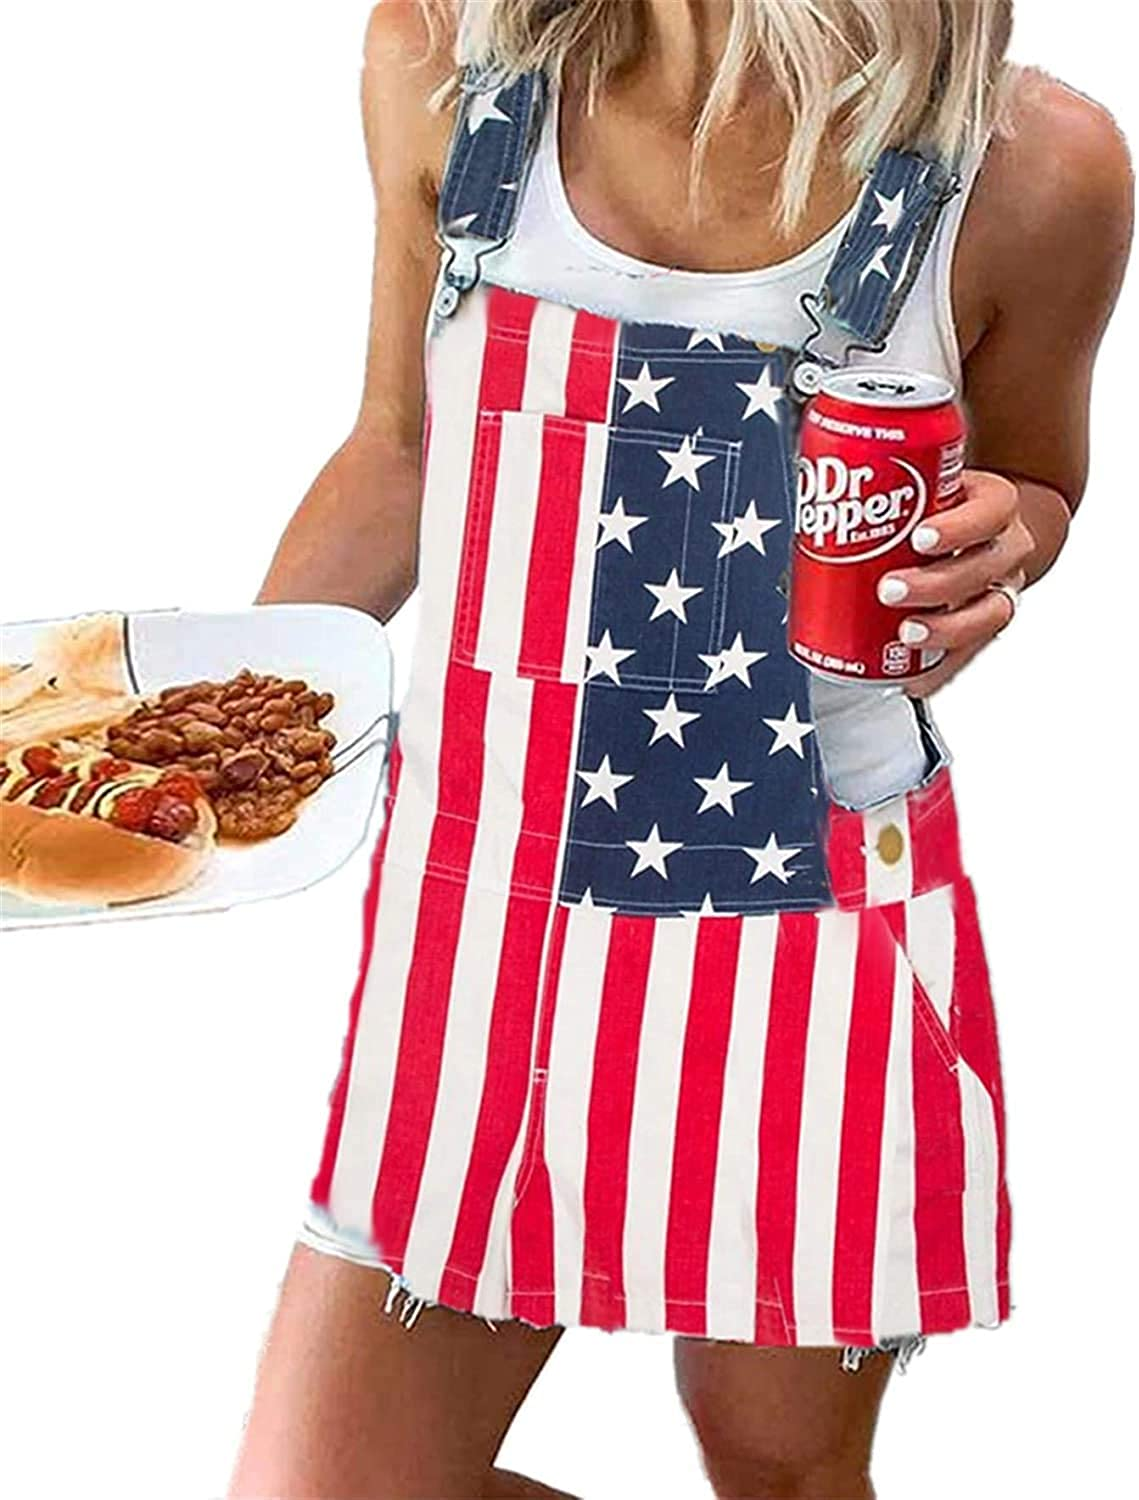 Women Denim Overall Dress Adjustable Jumpsu Straps Flag American Same excellence day shipping